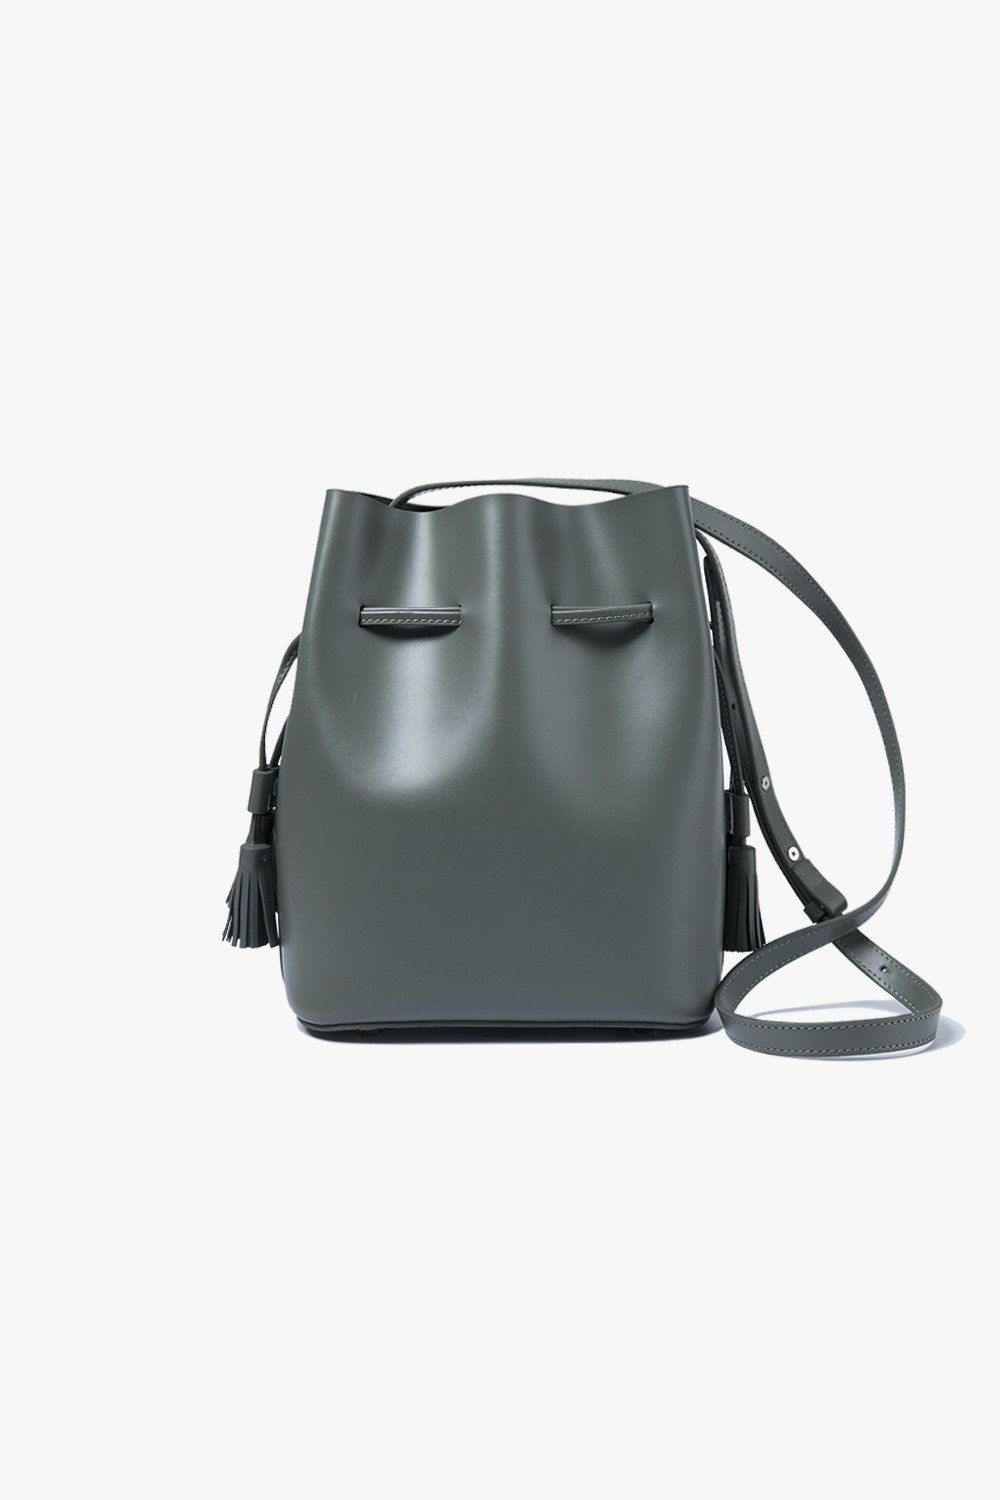 Fall Fashion trends 2017 bucket bags melonkiss 8